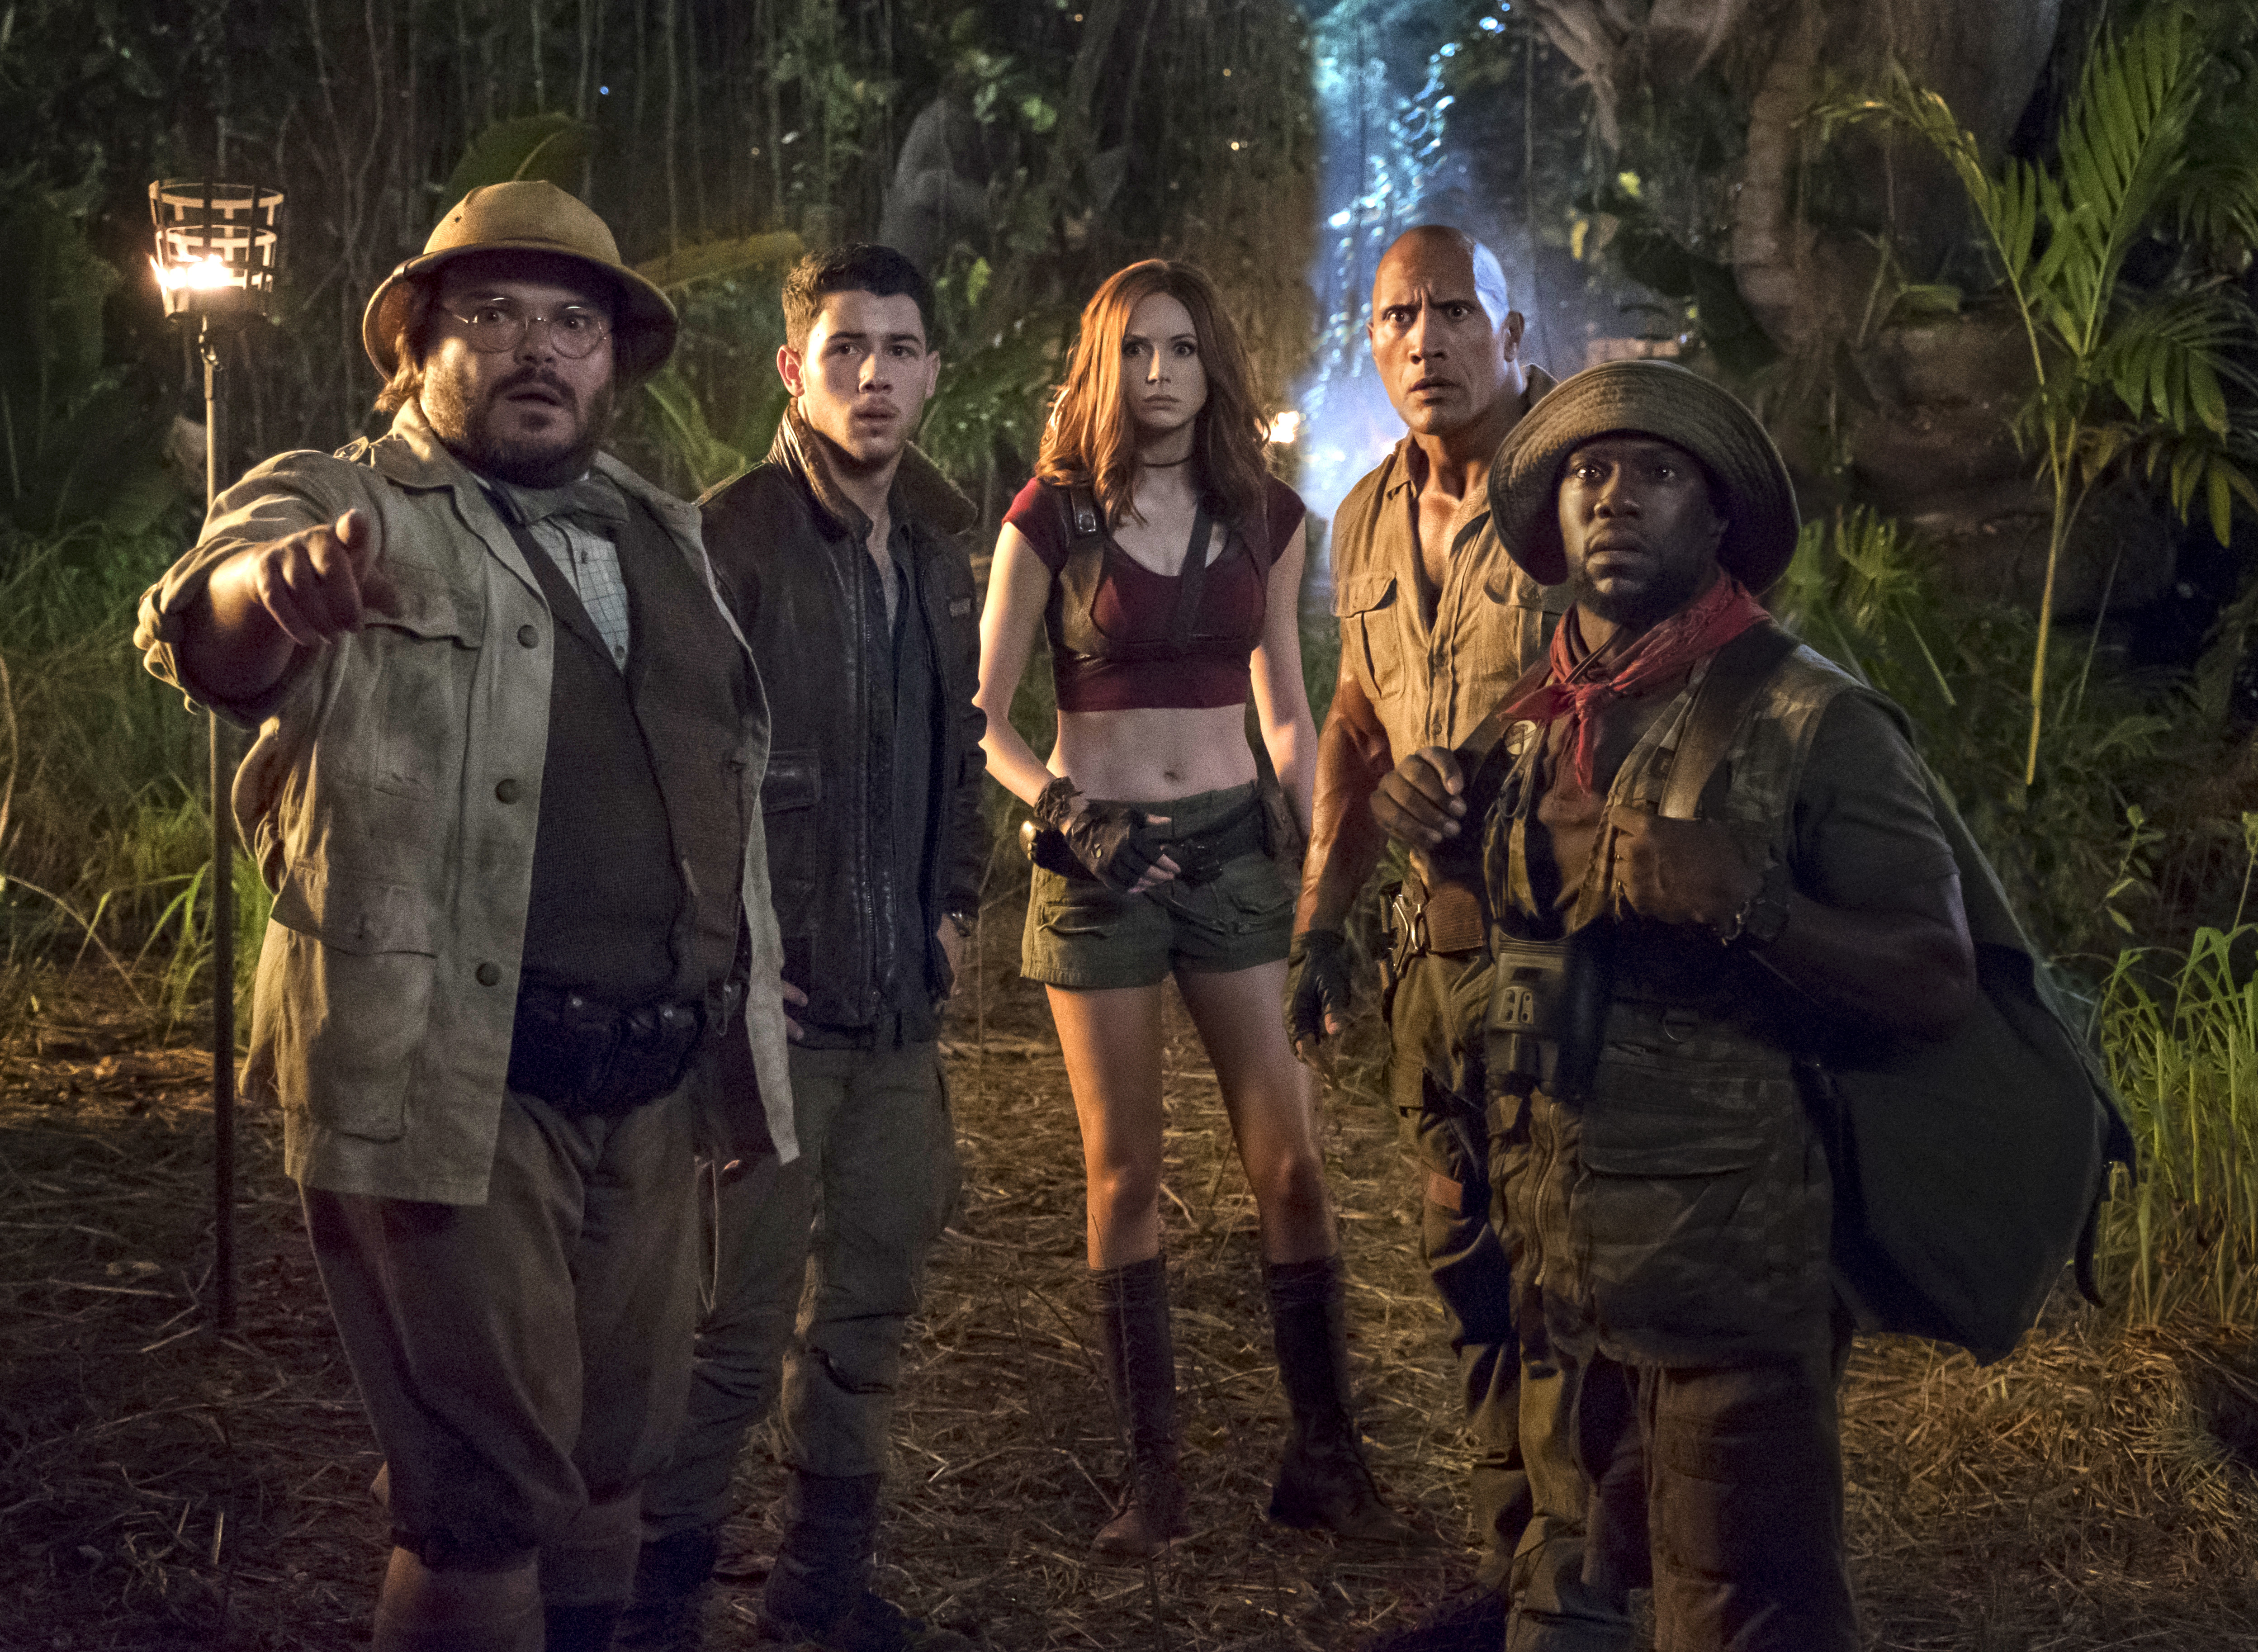 Jack Black, Nick Jonas, Karen Gillan, Dwayne Johnson and Kevin Hart star in JUMANJI: WELCOME TO THE JUNGLE.